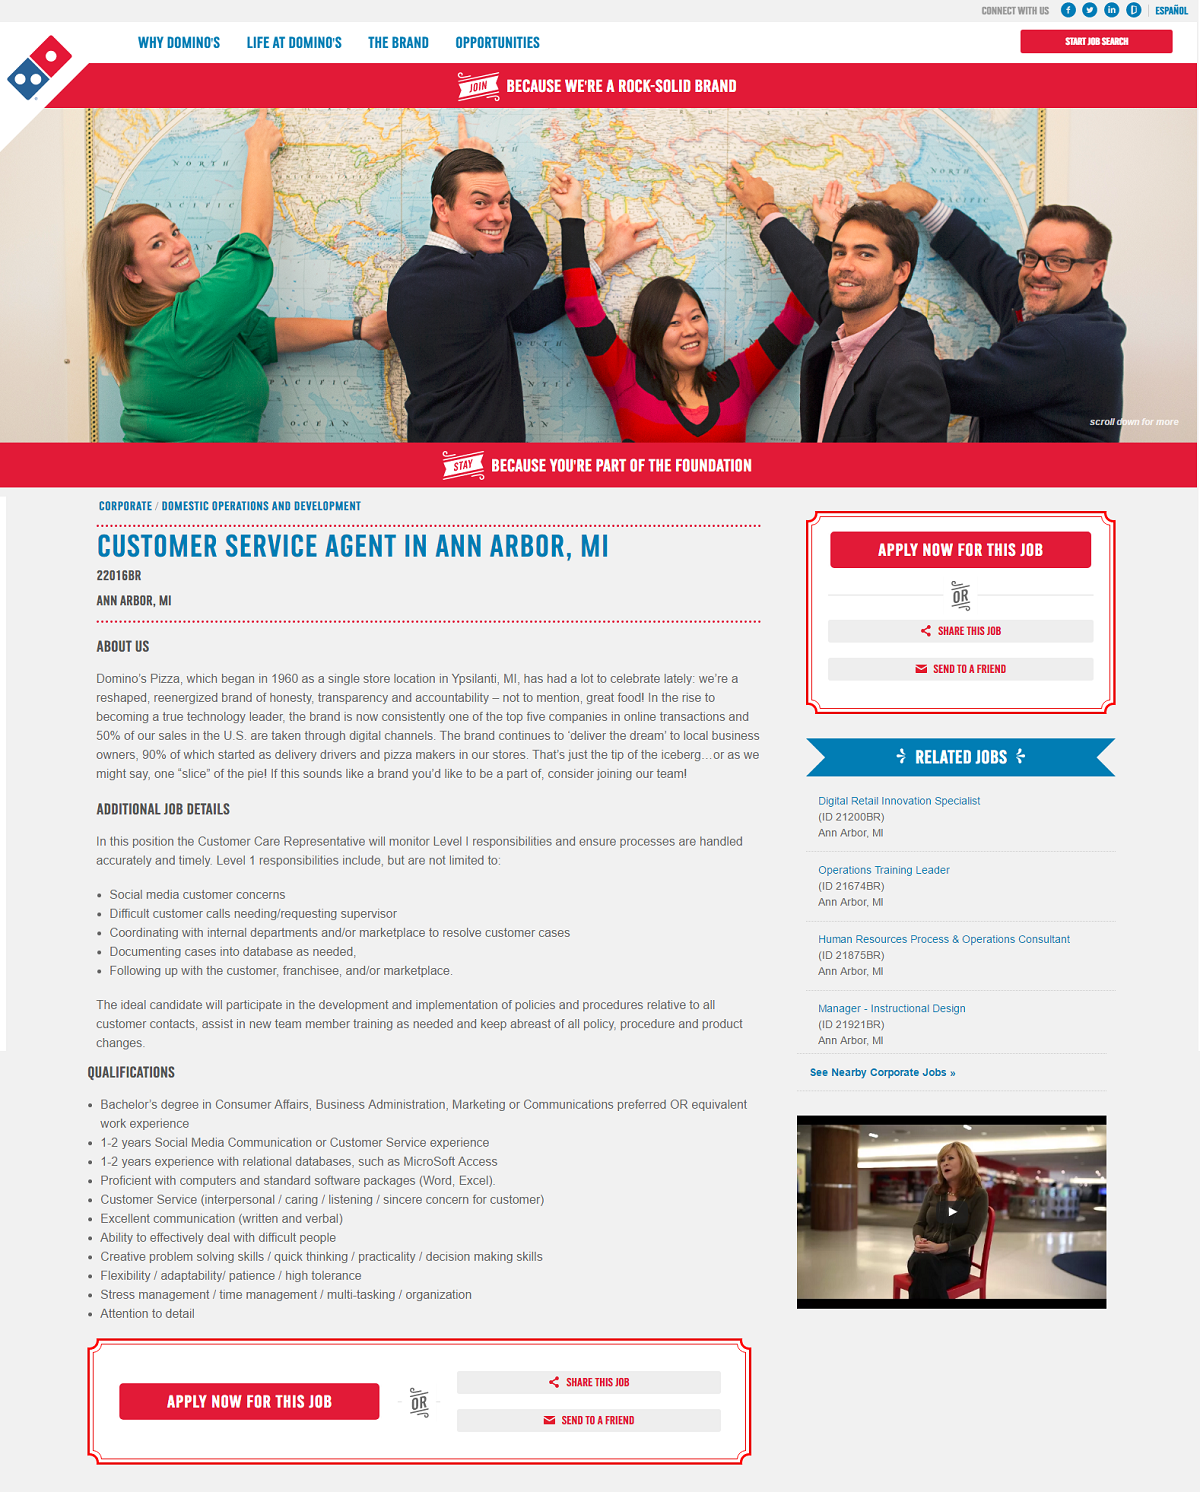 Customer Service Job Ad Domino's